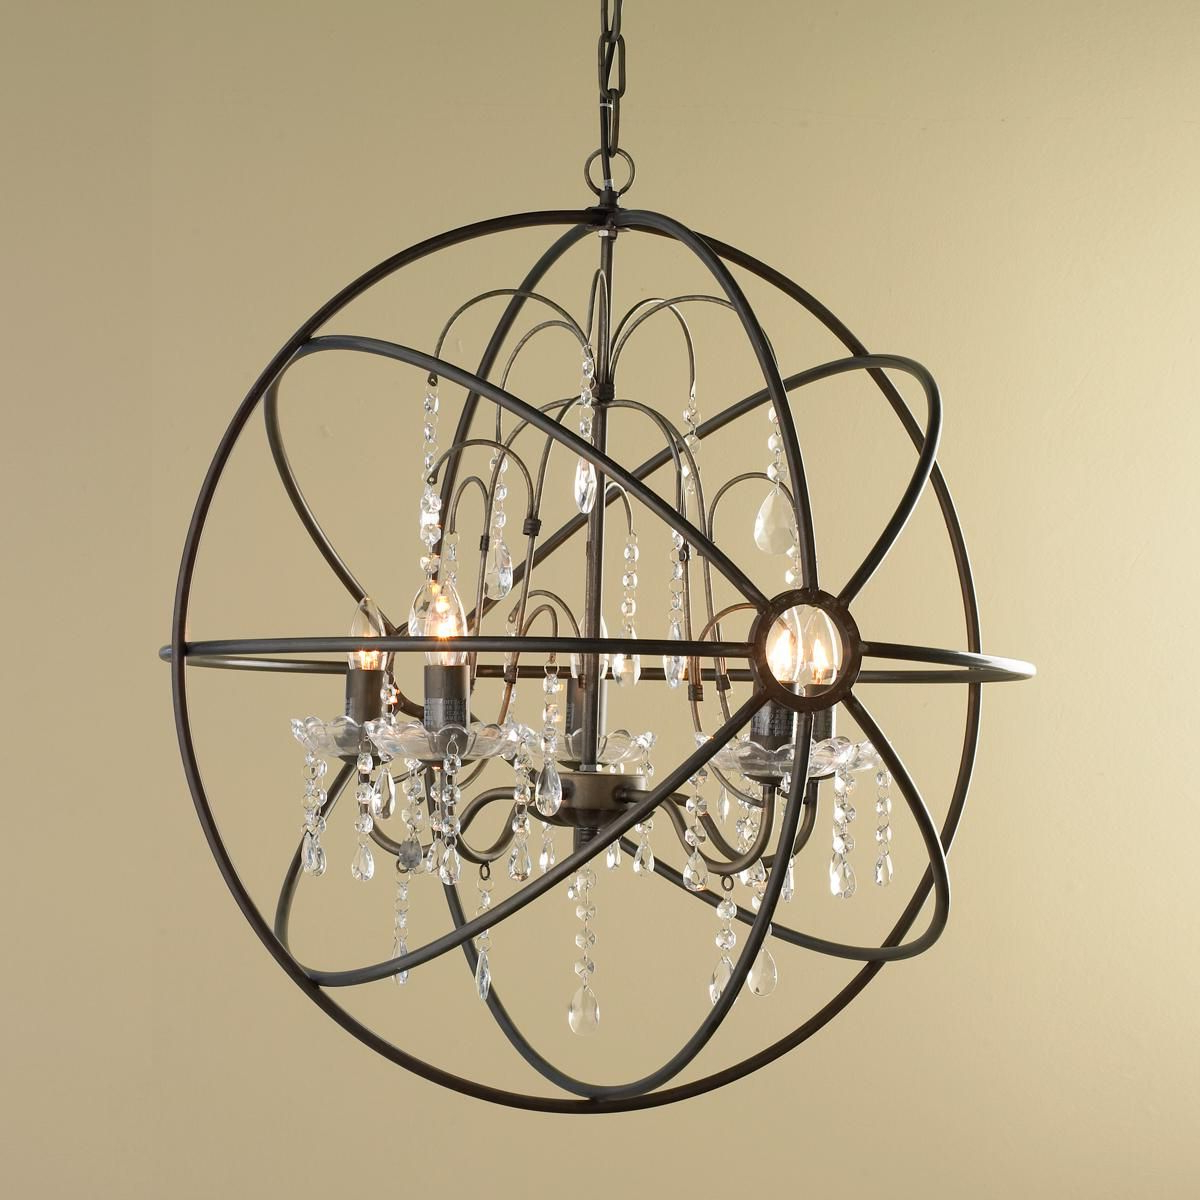 Home Design Gallery In With Latest Kierra 4 Light Unique / Statement Chandeliers (Gallery 25 of 25)